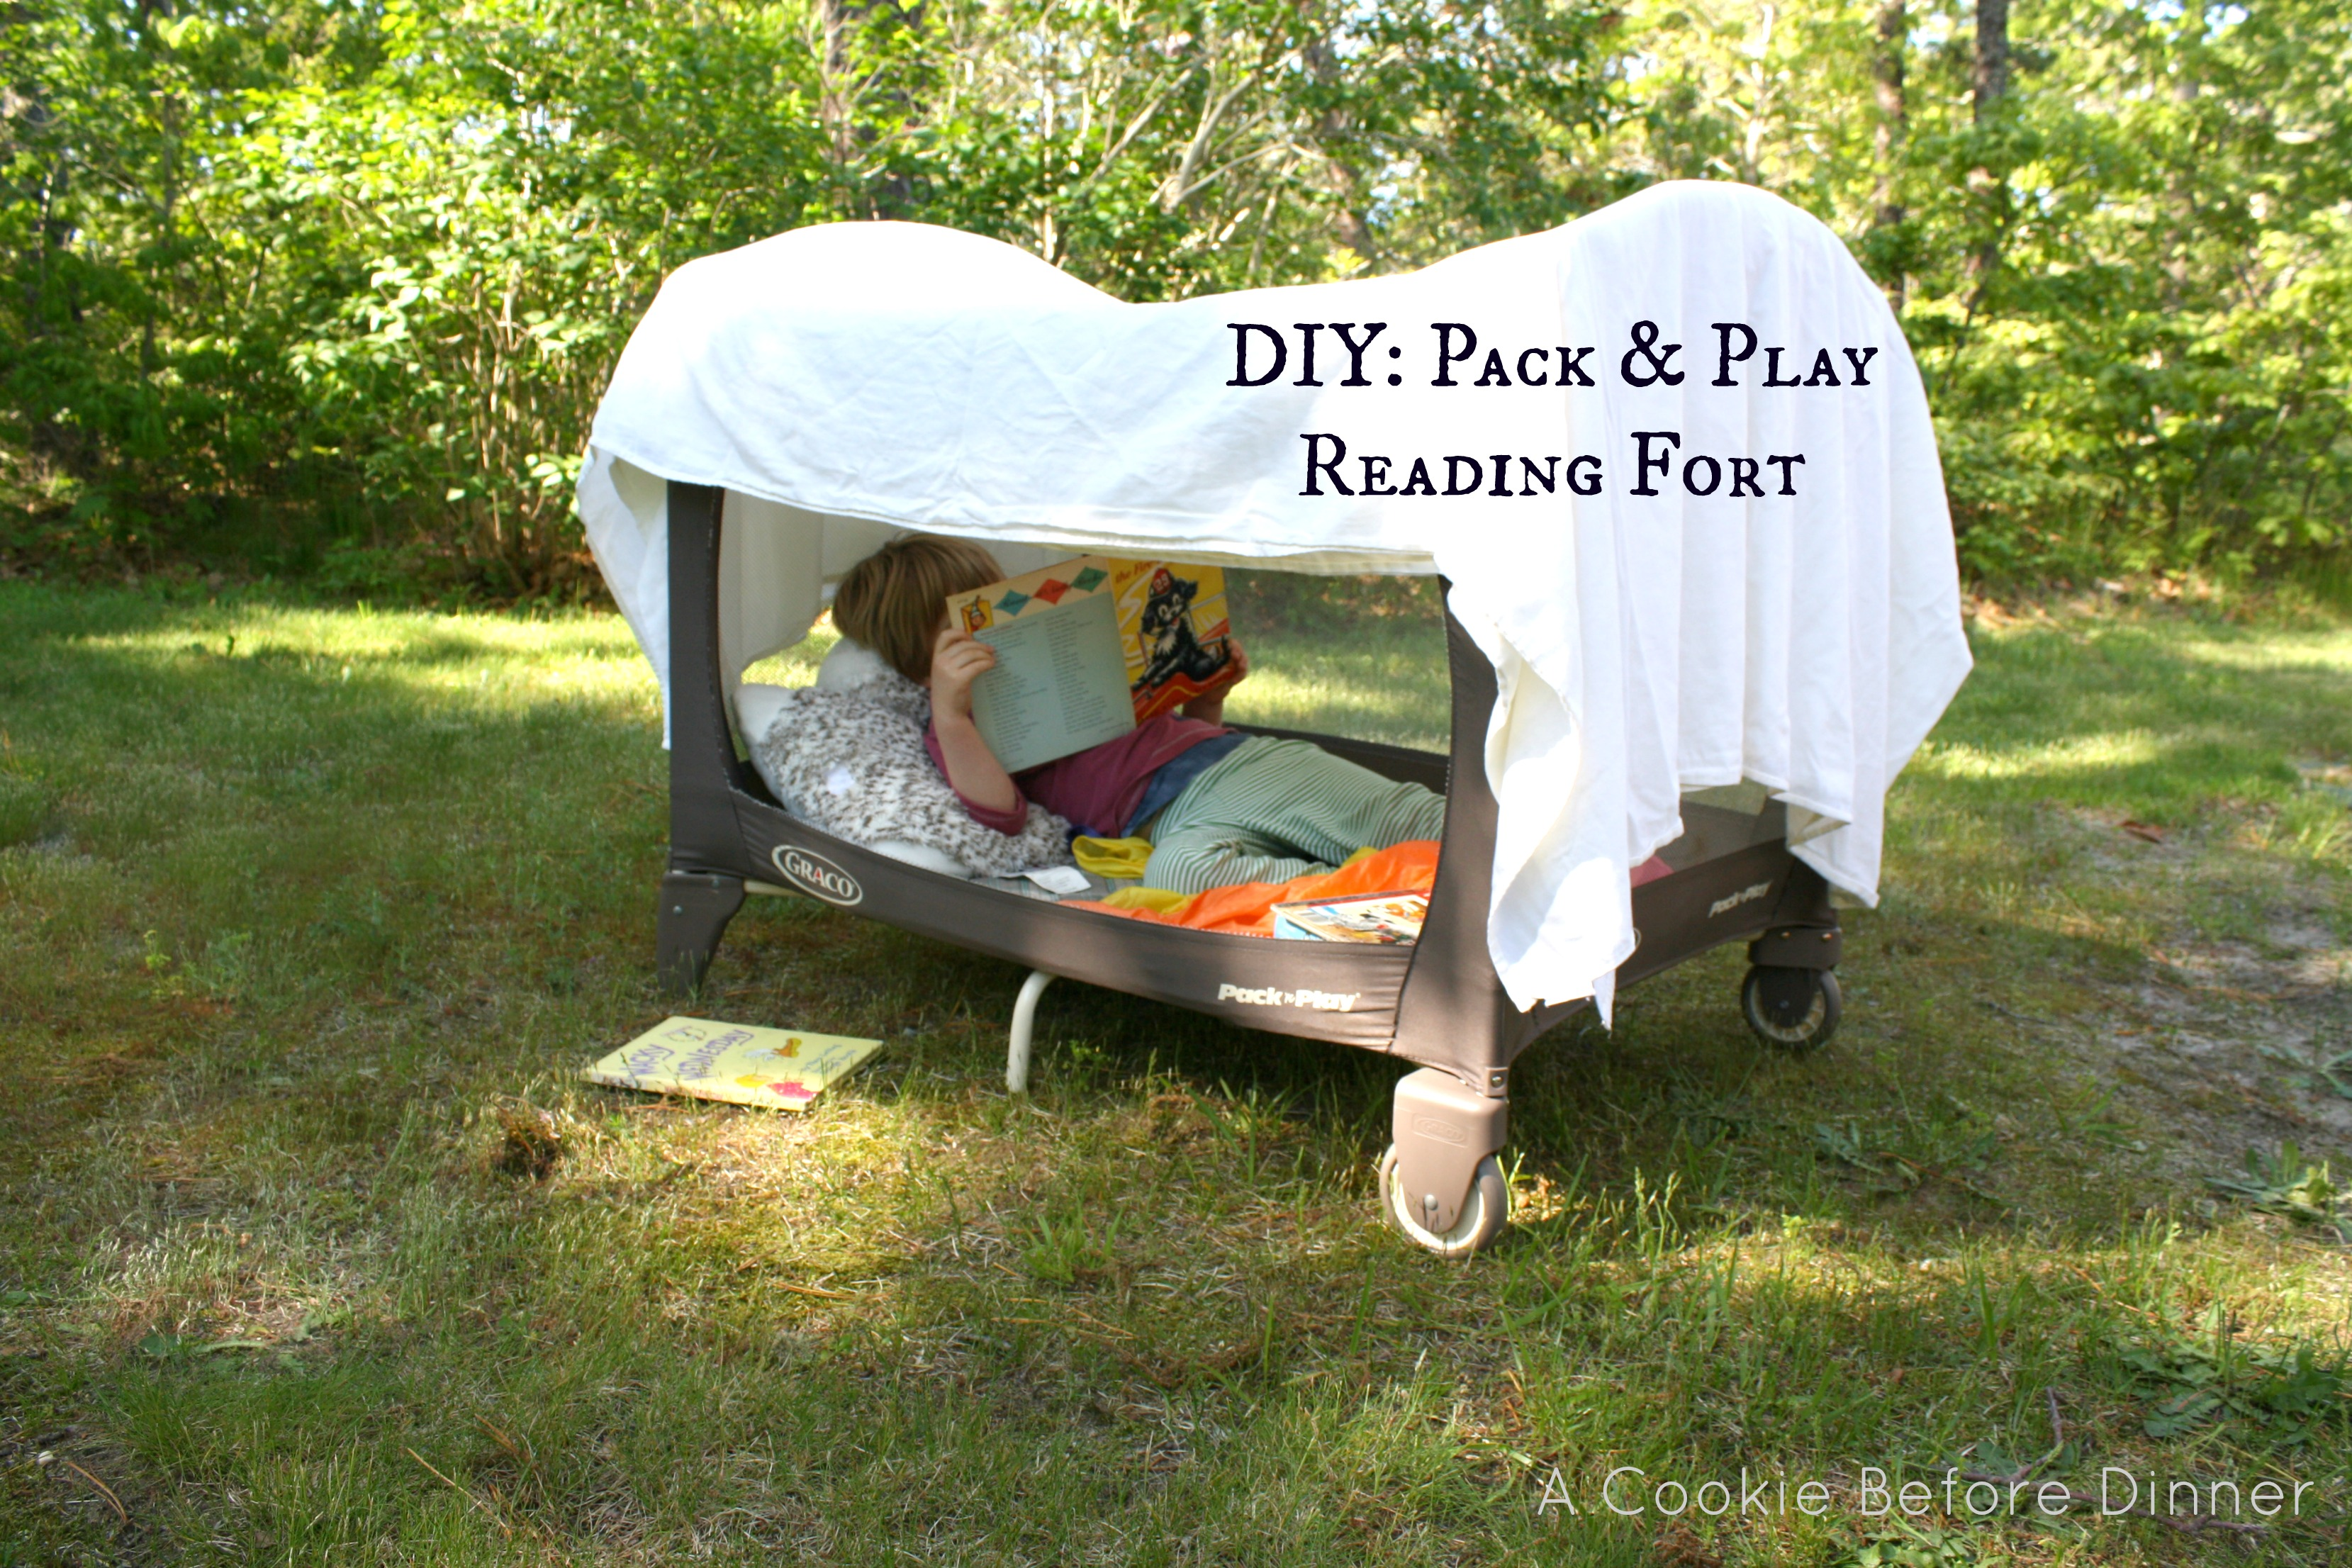 Diy Pack Play Reading Fort